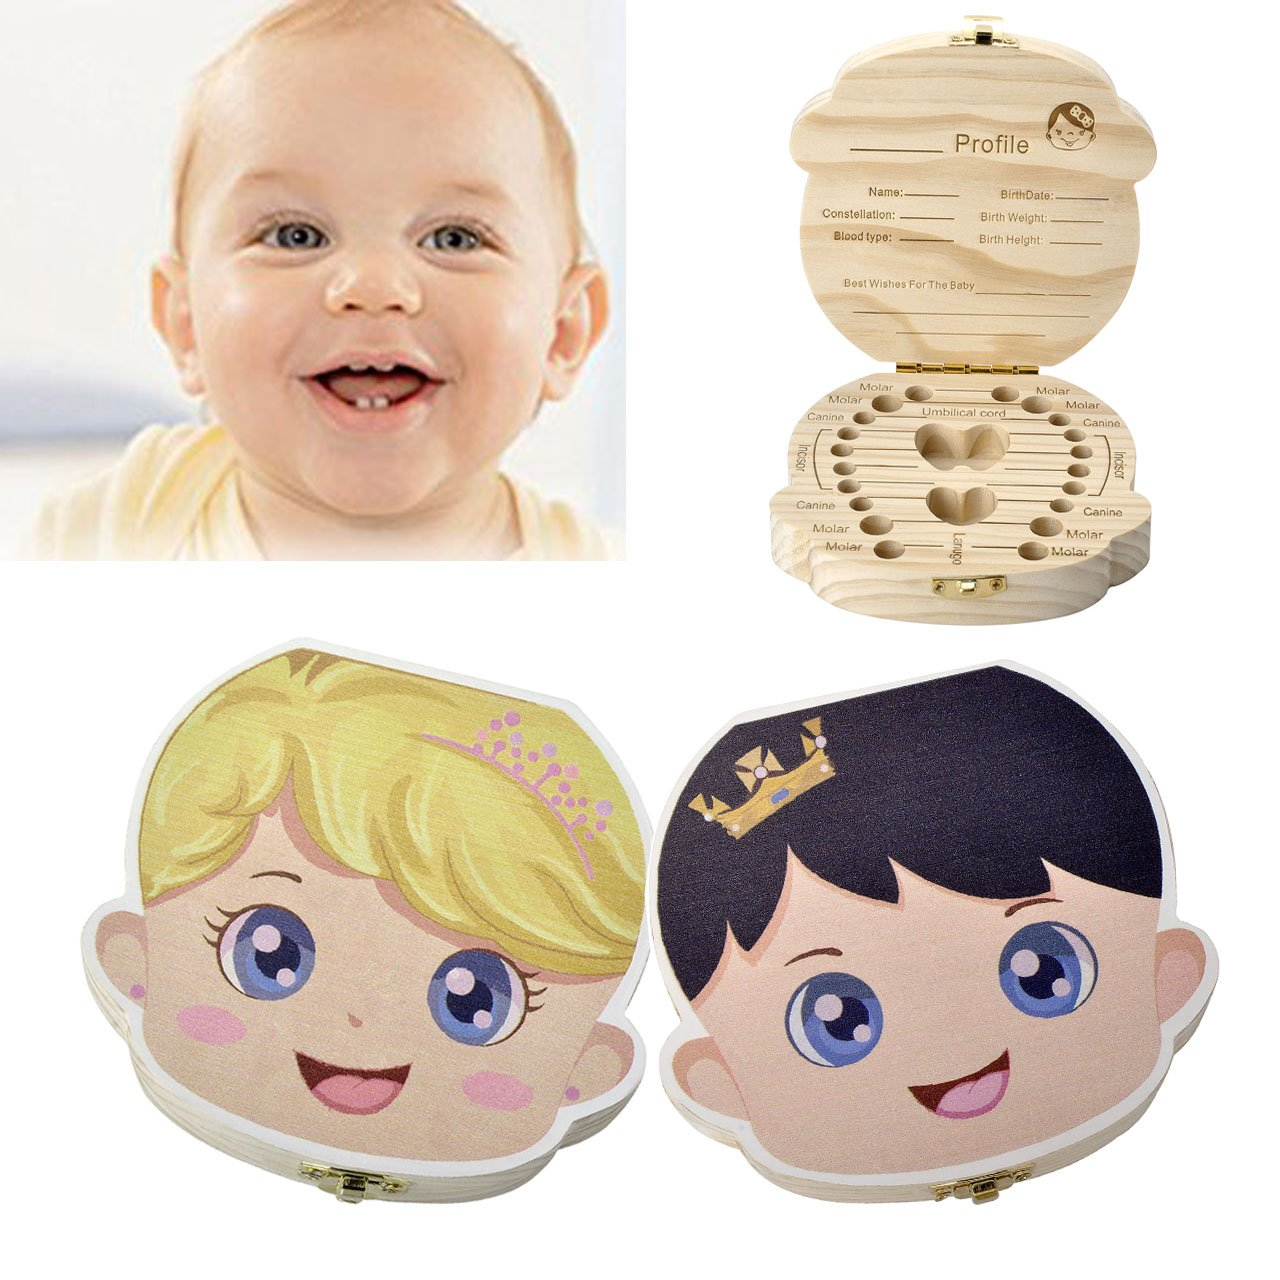 BESTZY Teeth Milk Teeth Saver Boxes Wooden Kids Tooth Box,Baby Save Boxes for Children,Cute Personality Baby Teeth Box Baby Tooth Keepsake Box